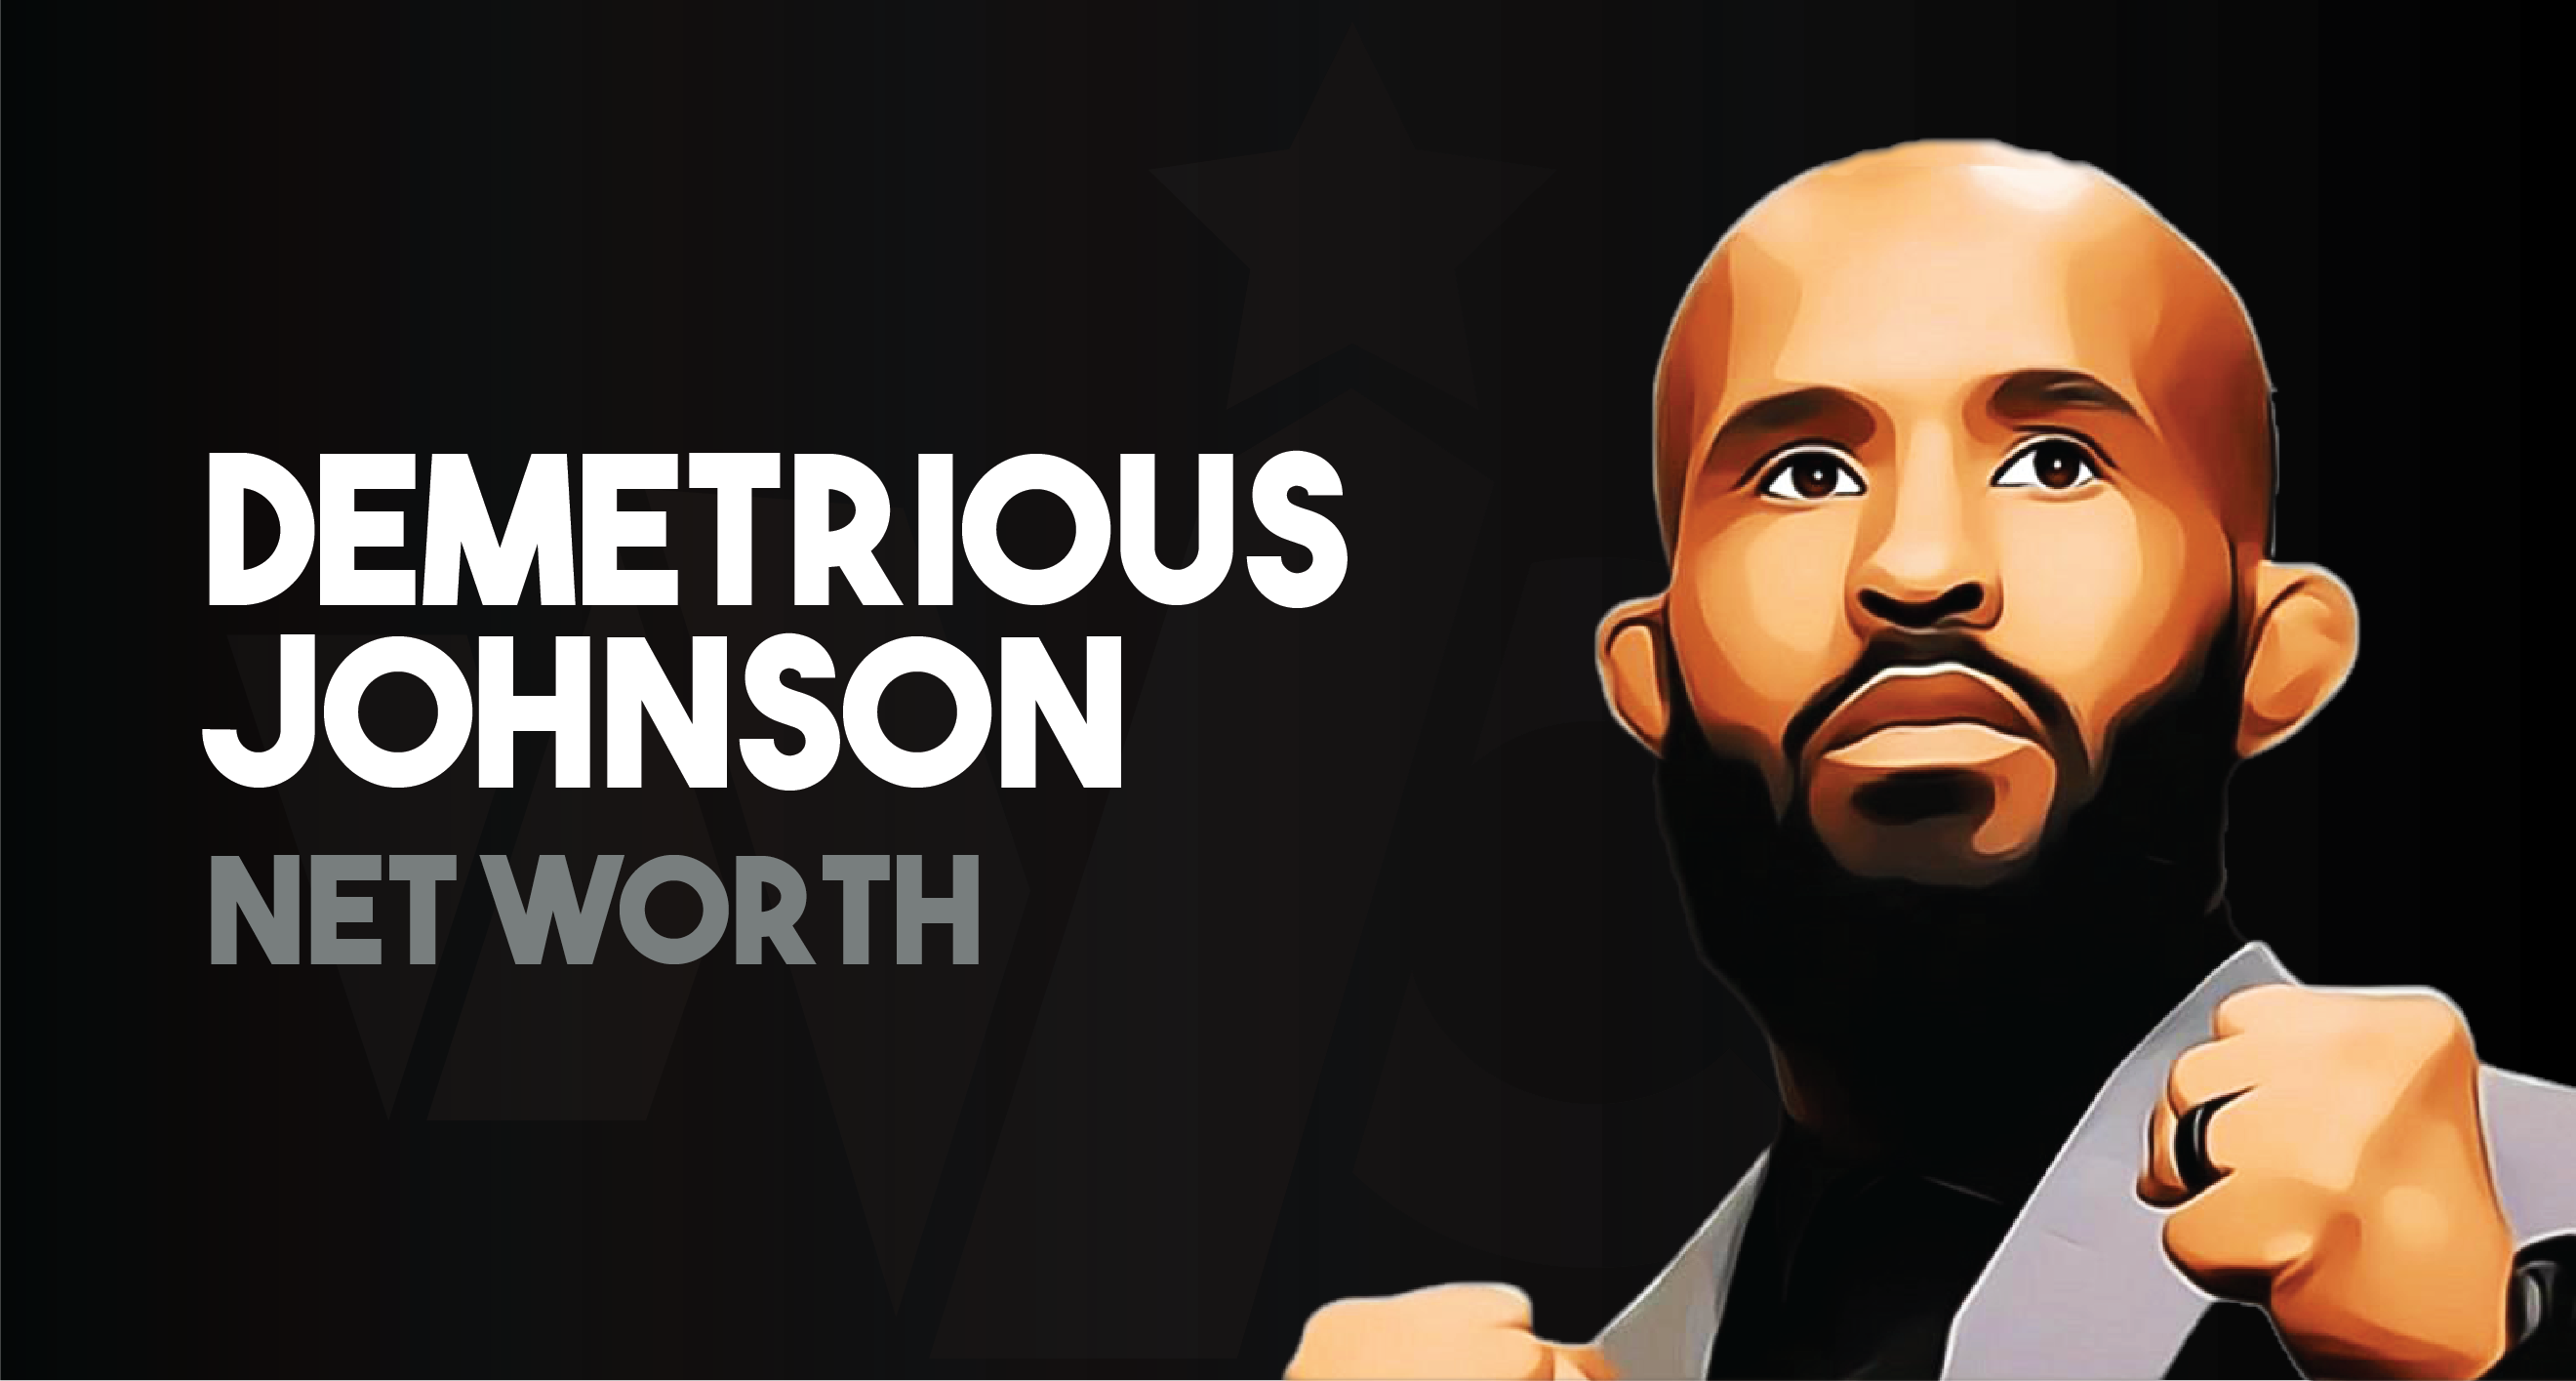 Demetrious Johnson_Net Worth